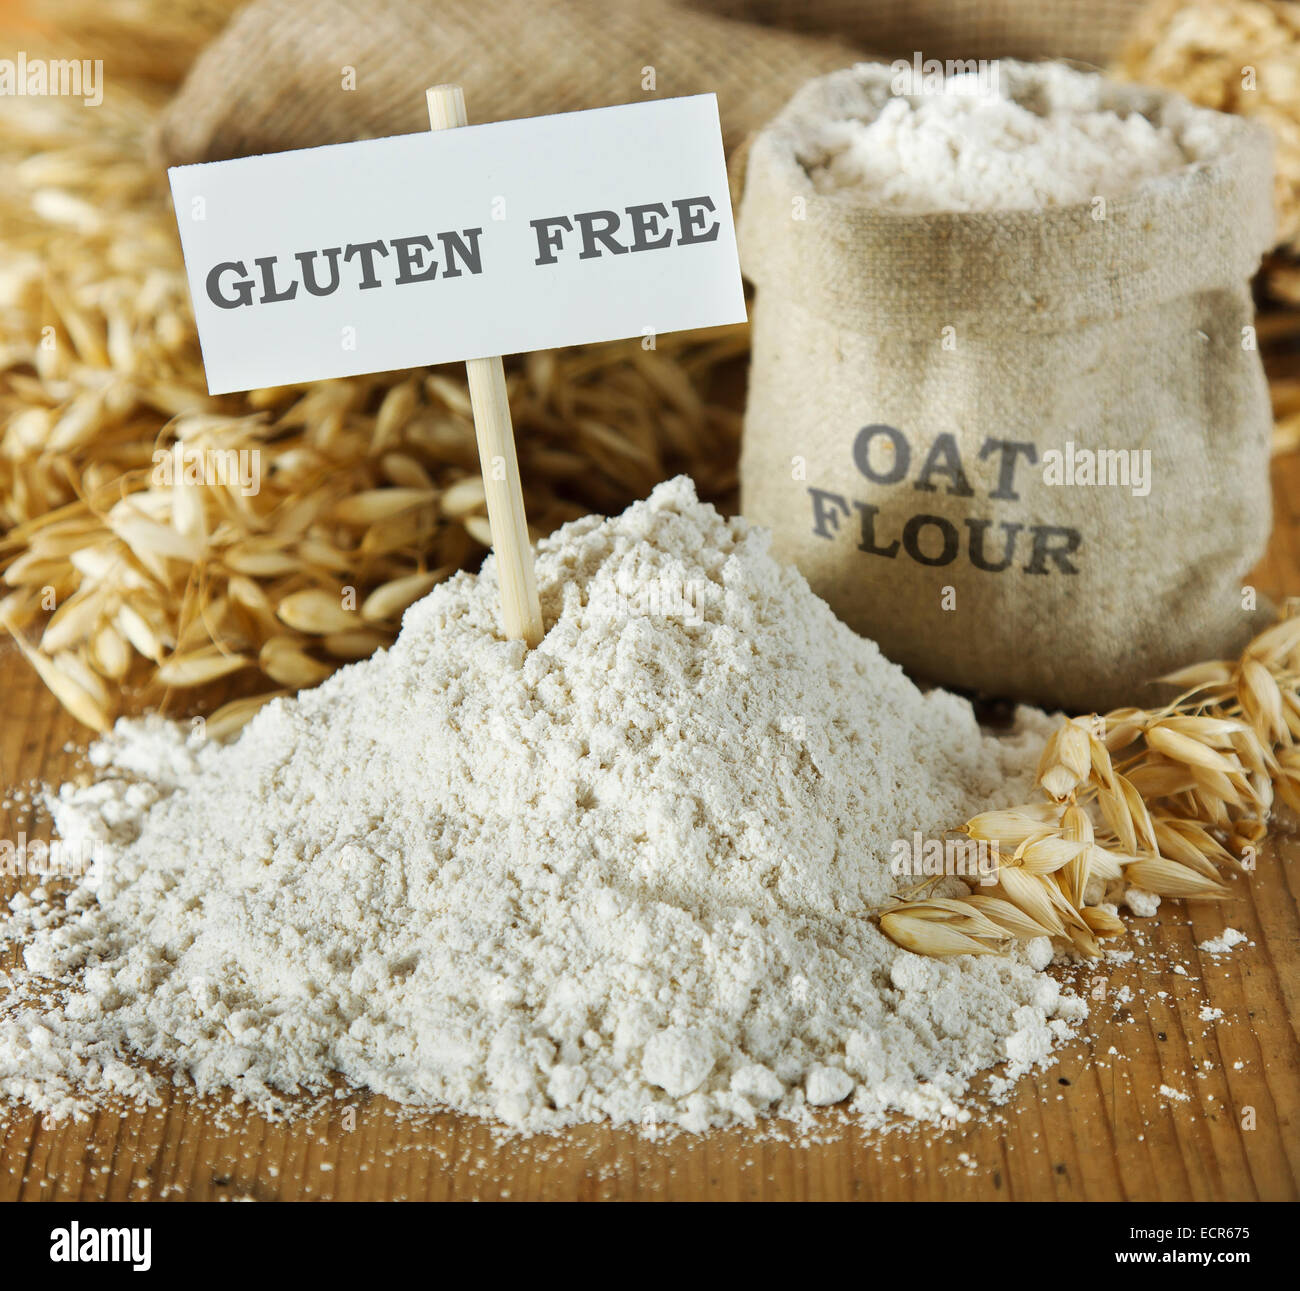 Oat flour on wooden table - Stock Image